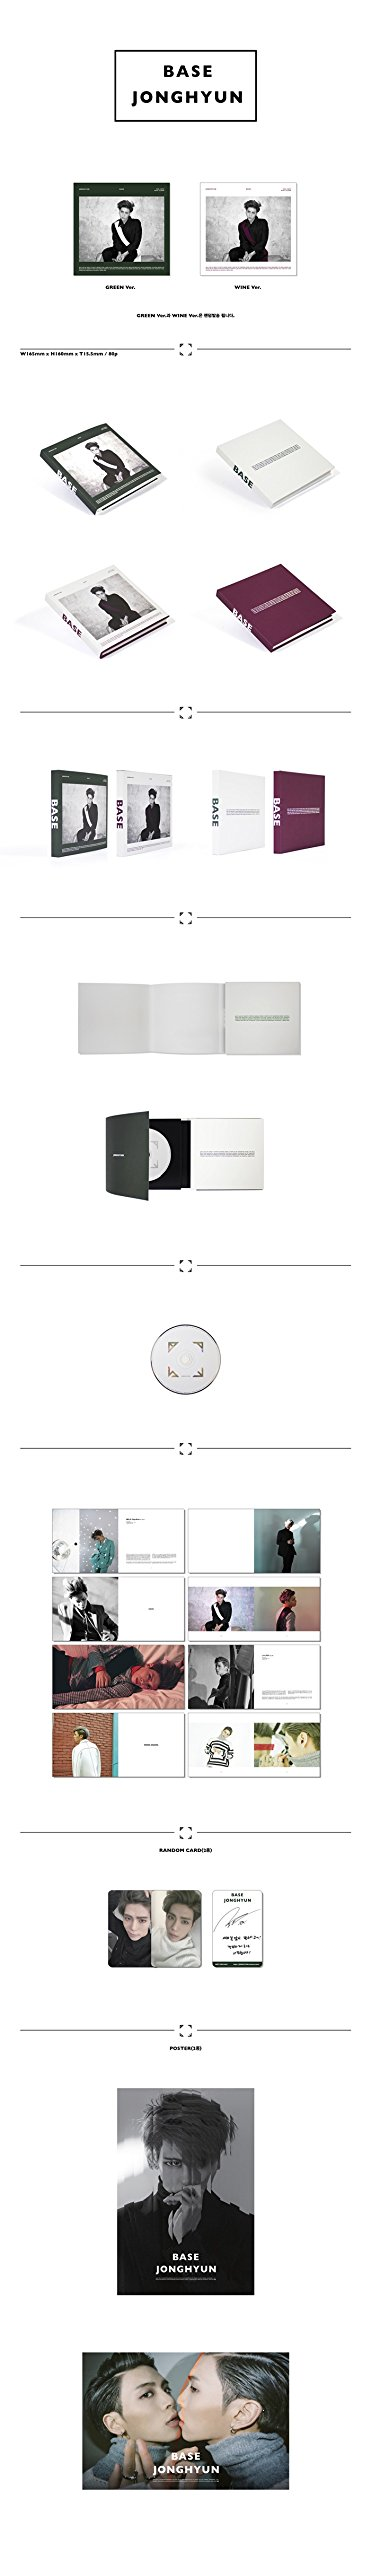 SHINEE JONGHYUN [BASE] 1st Mini Album CD (Green or Wine Jacket Cover) + a Photocard + a Poster (one of two versions) by